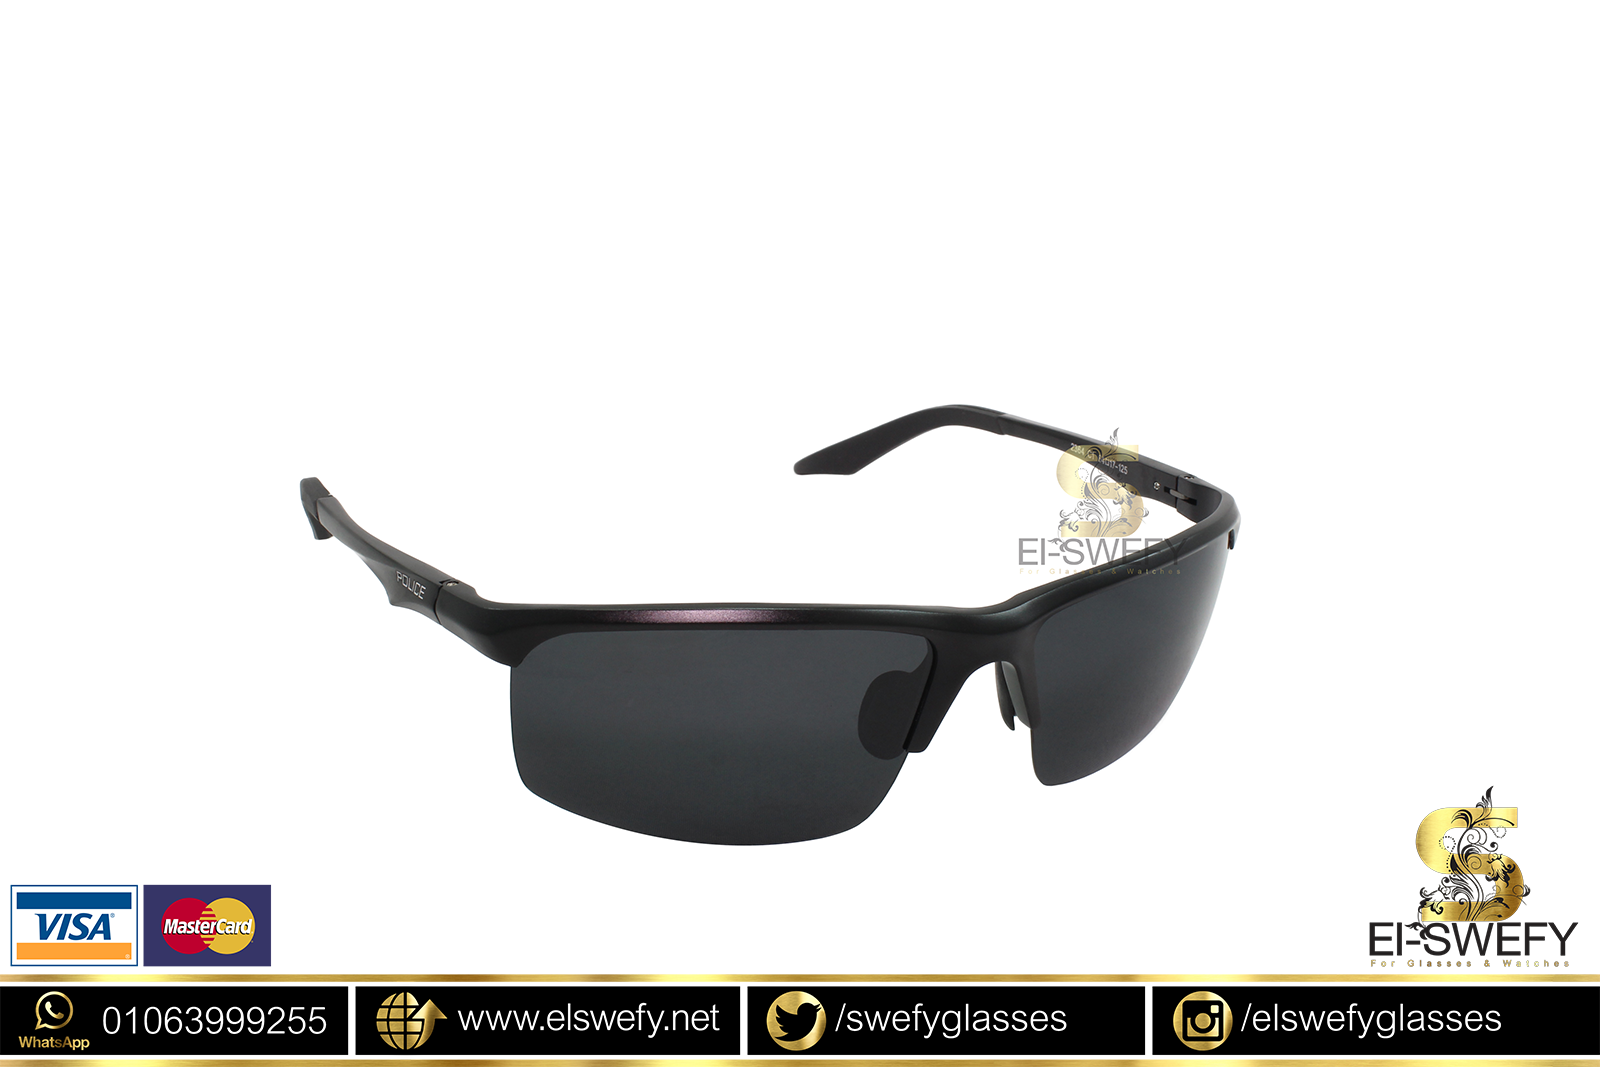 8d675d0188 POLICE – El-Swefy Glasses   Watches